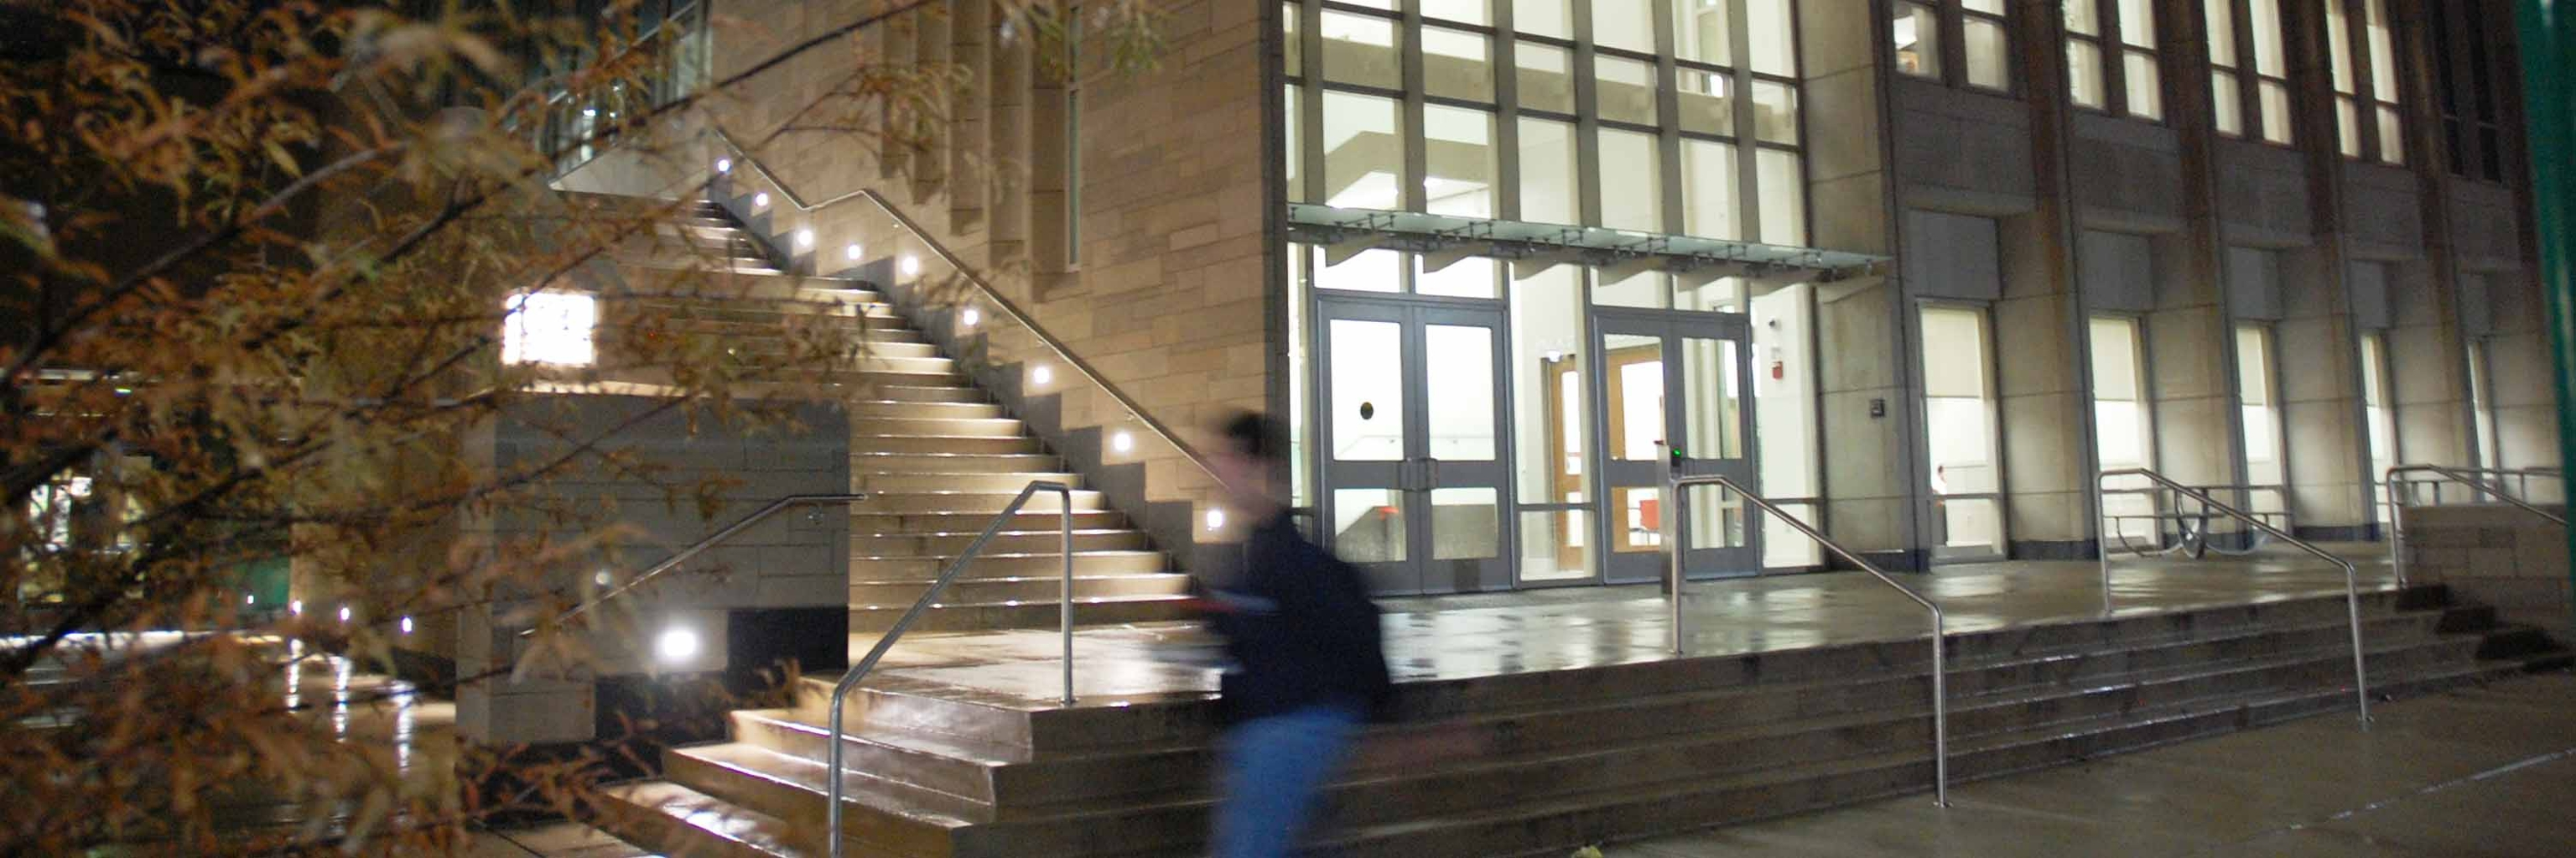 spea building at night